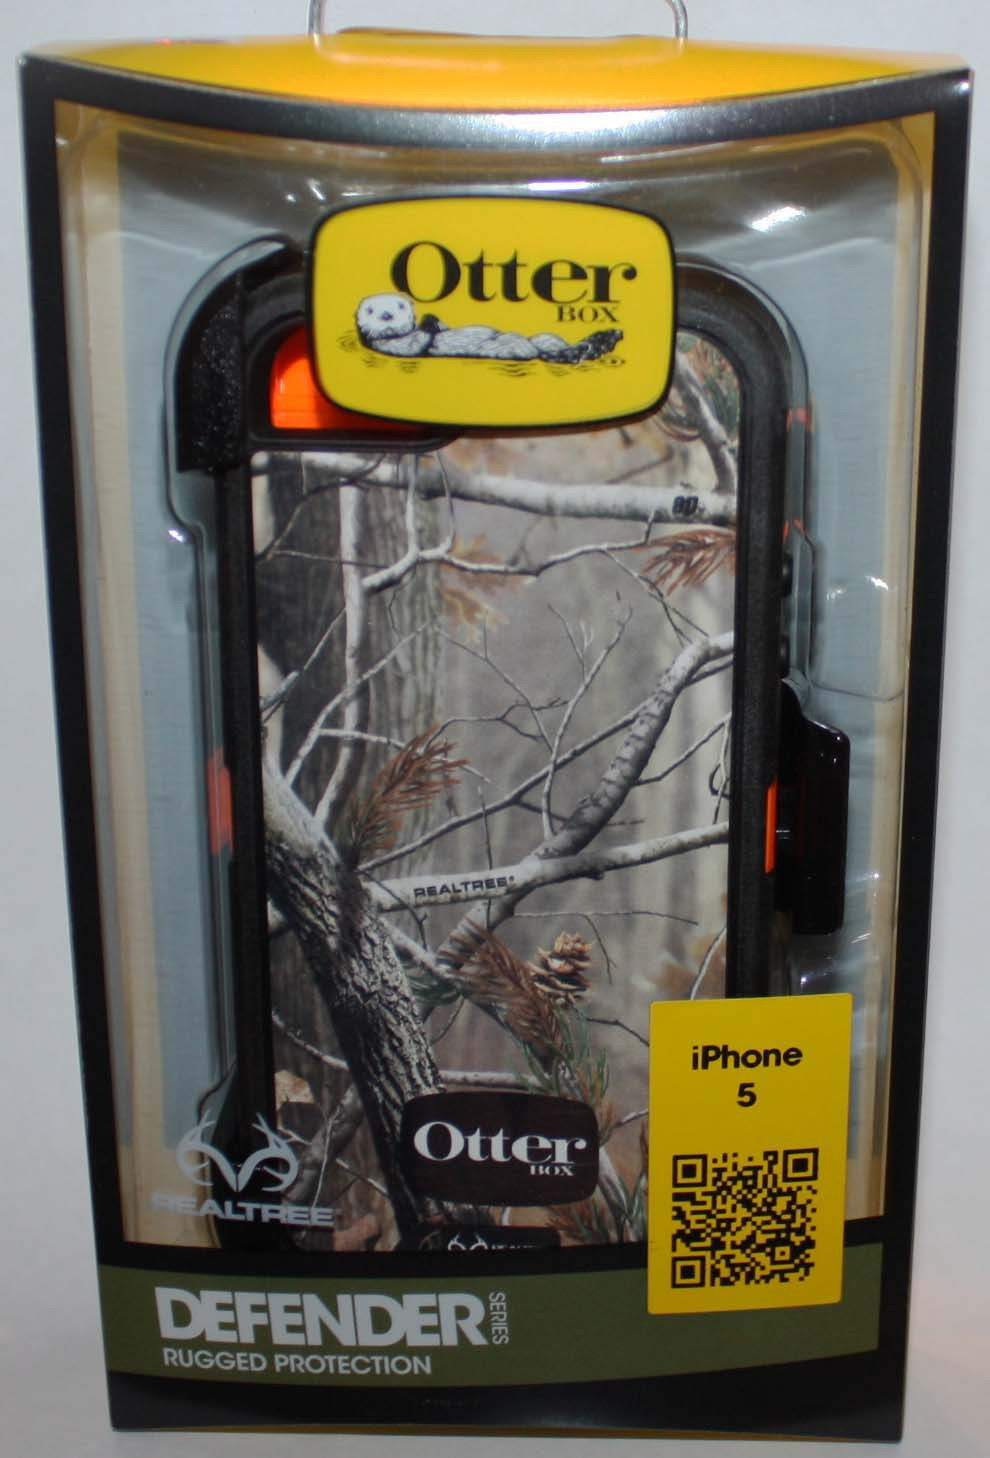 OtterBox DEFENDER Realtree Camo iPhone 5 Hard Shell Protective Phone Case 09550